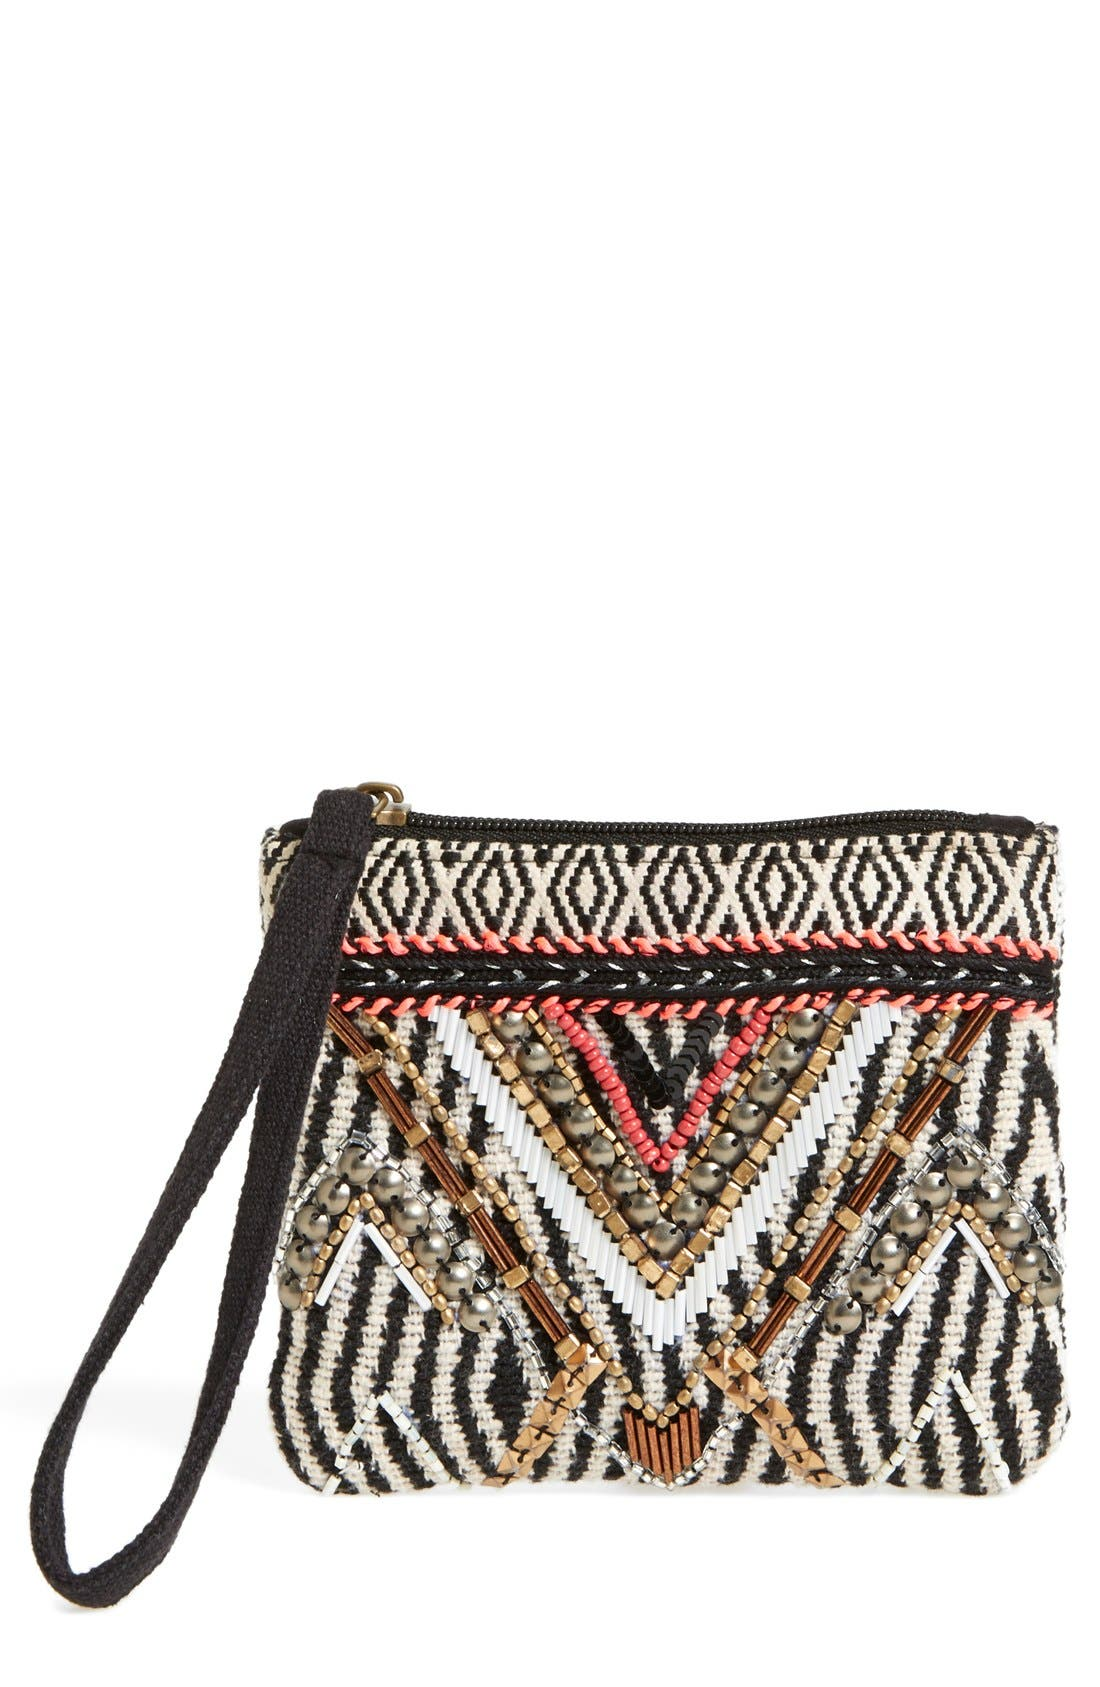 Alternate Image 1 Selected - Street Level 'Ratna' Beaded Wristlet